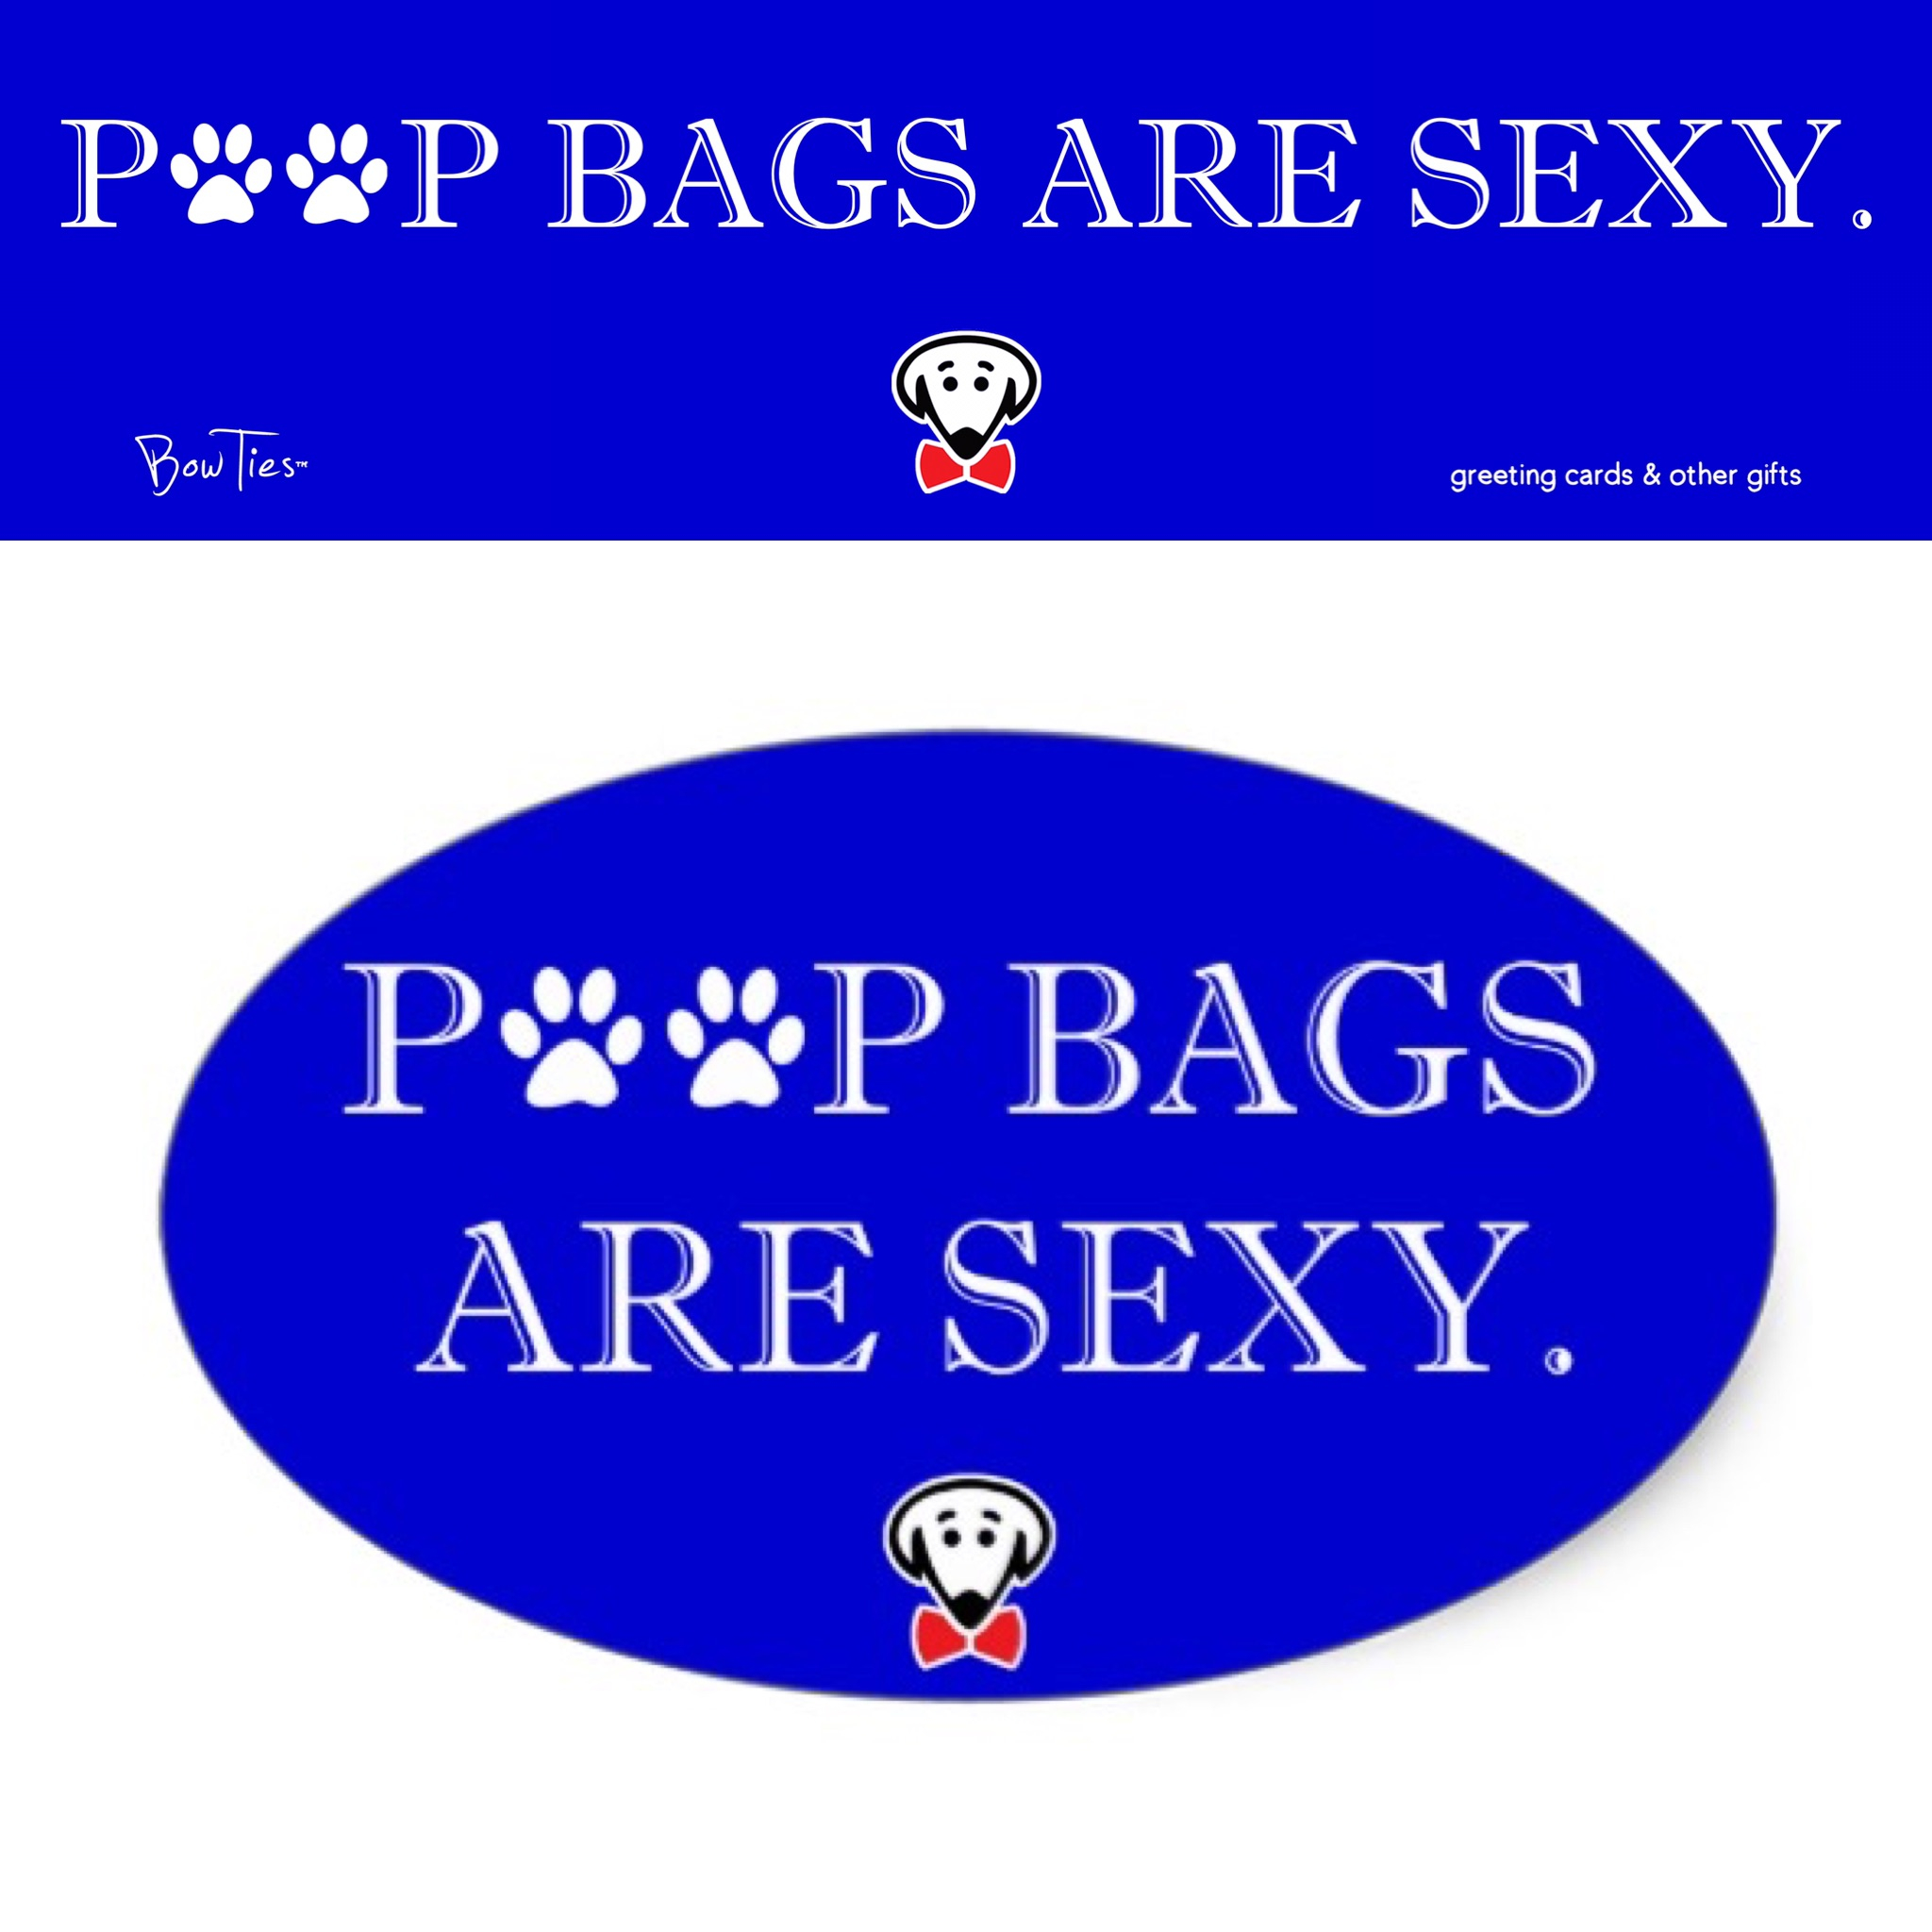 Poop bags are sexy. – sticker